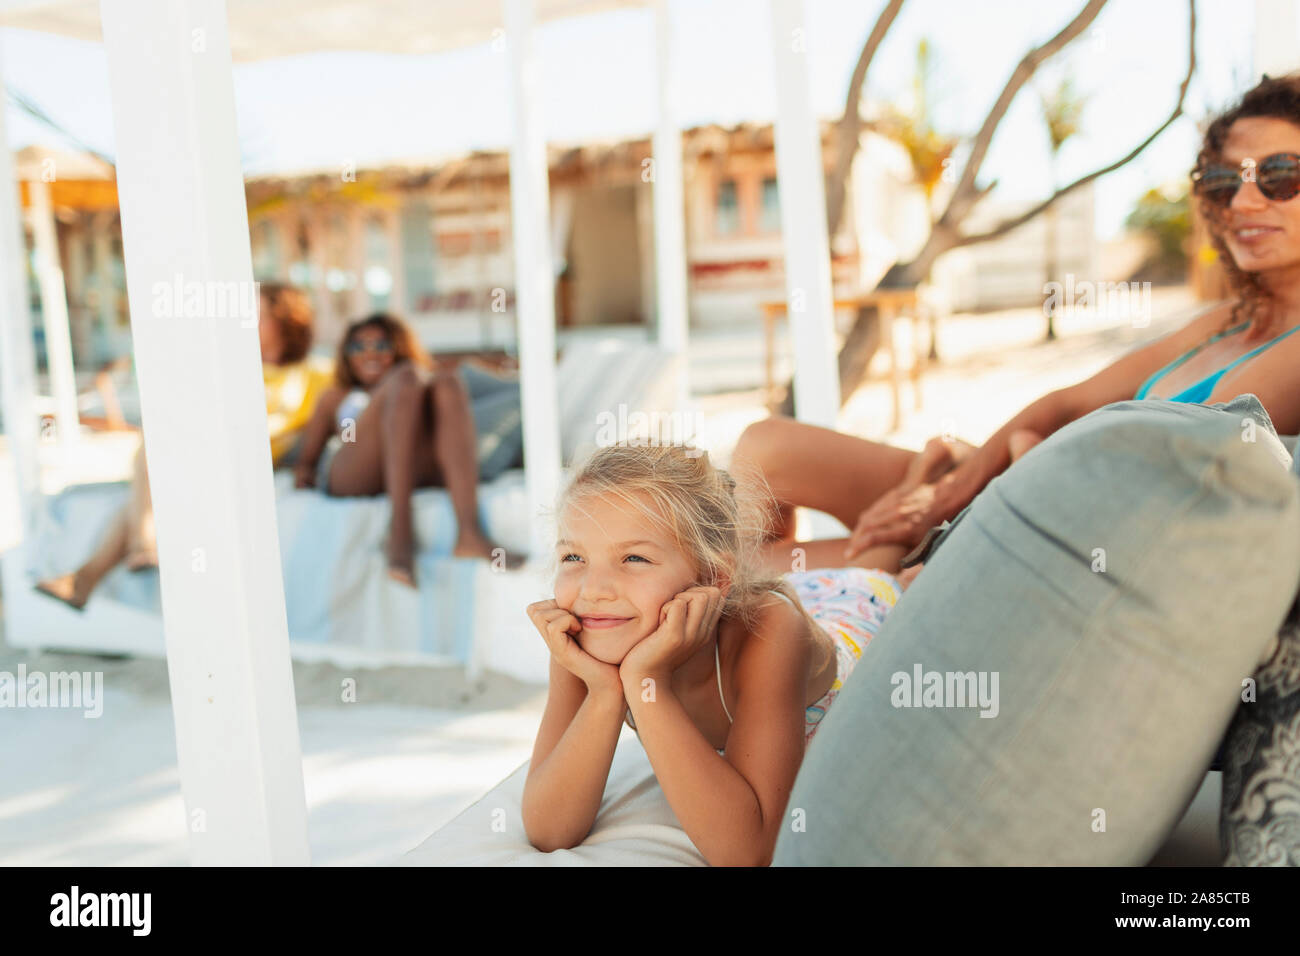 Carefree girl relaxing on beach patio Stock Photo